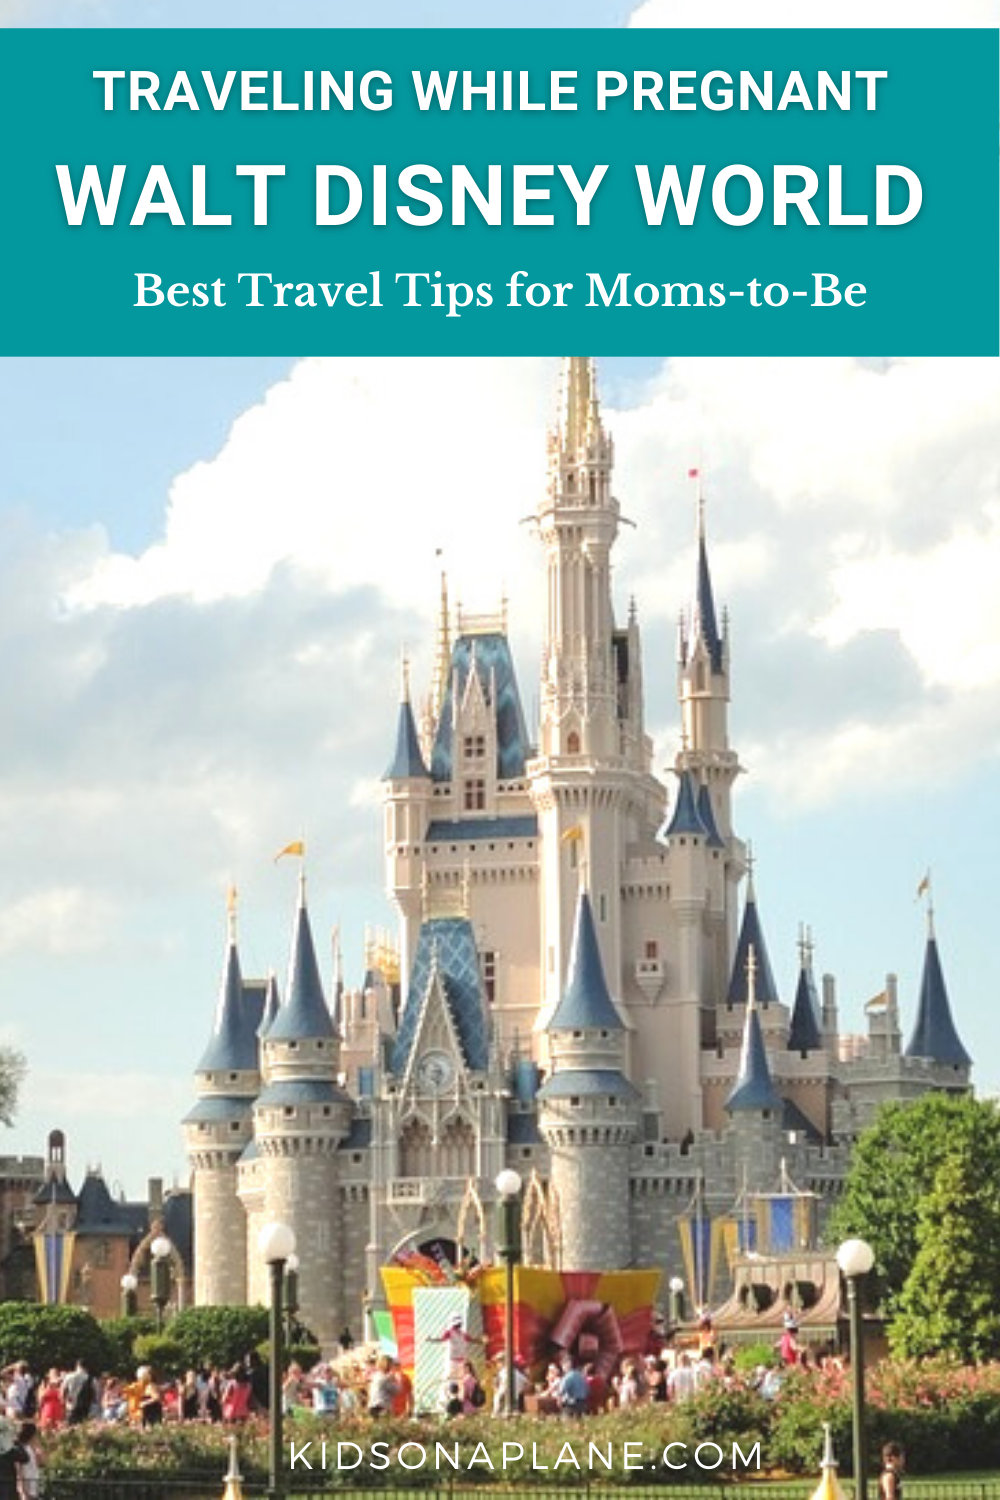 Disney World Travel Tips for Pregnant Moms to Be - How to Stay Cool Calm and Relaxed